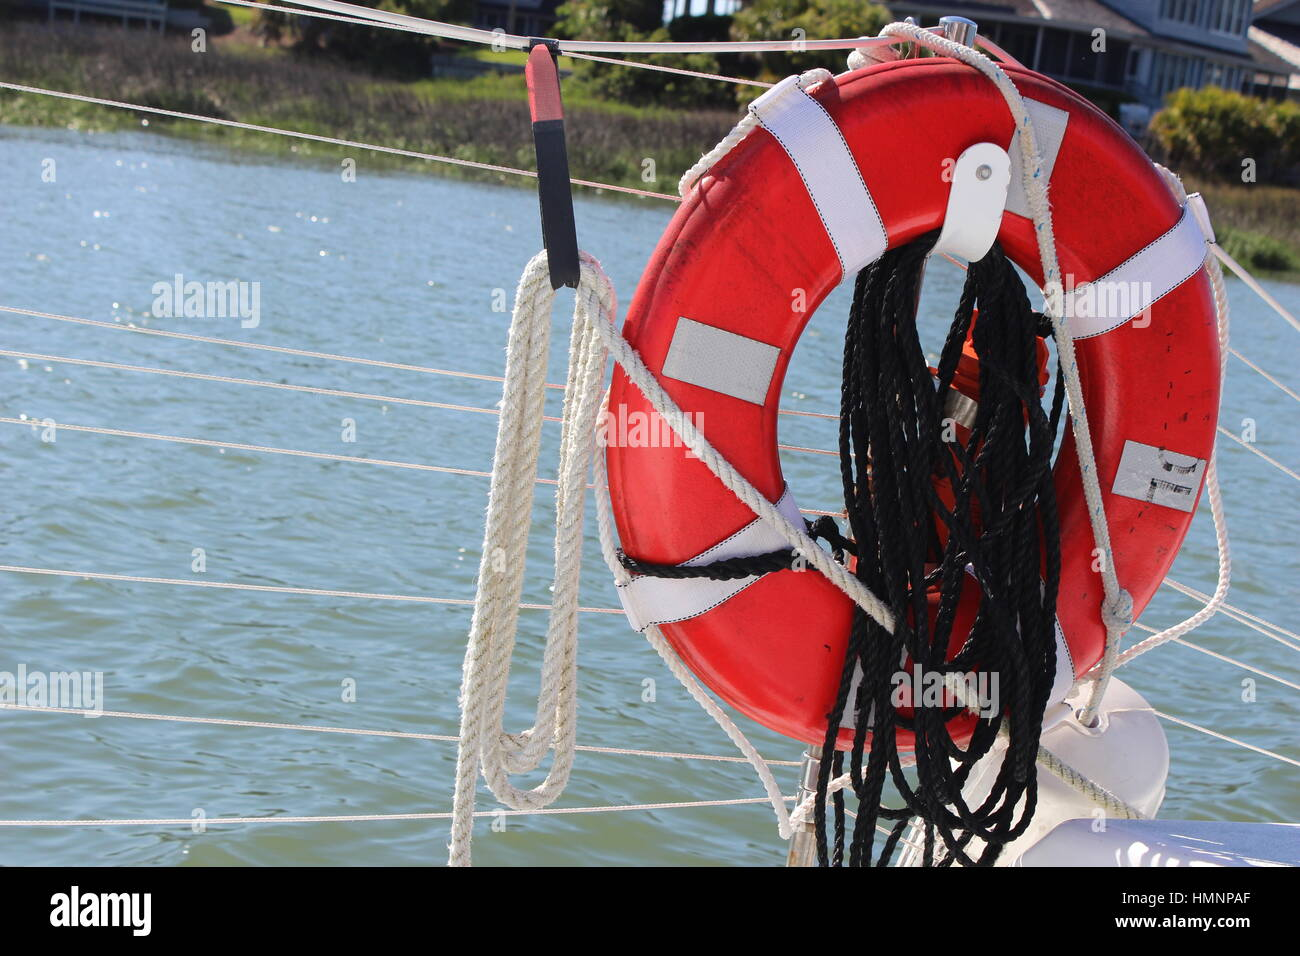 bright red lifesaver on a boat stock photo 133244231 alamy